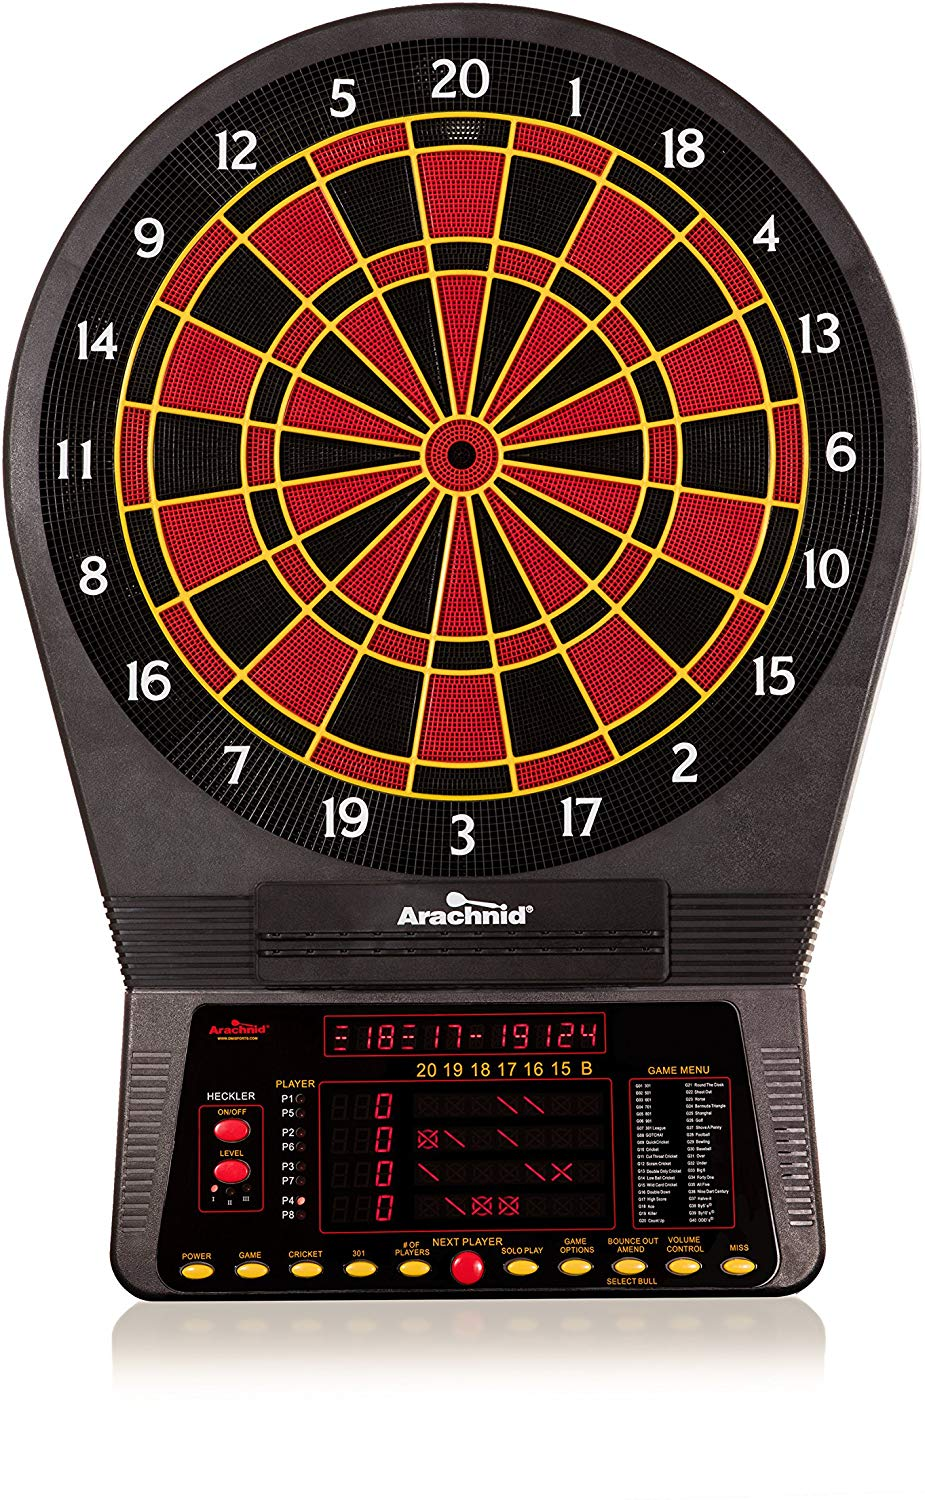 Arachnid Cricket Pro 800 Electronic Dartboard